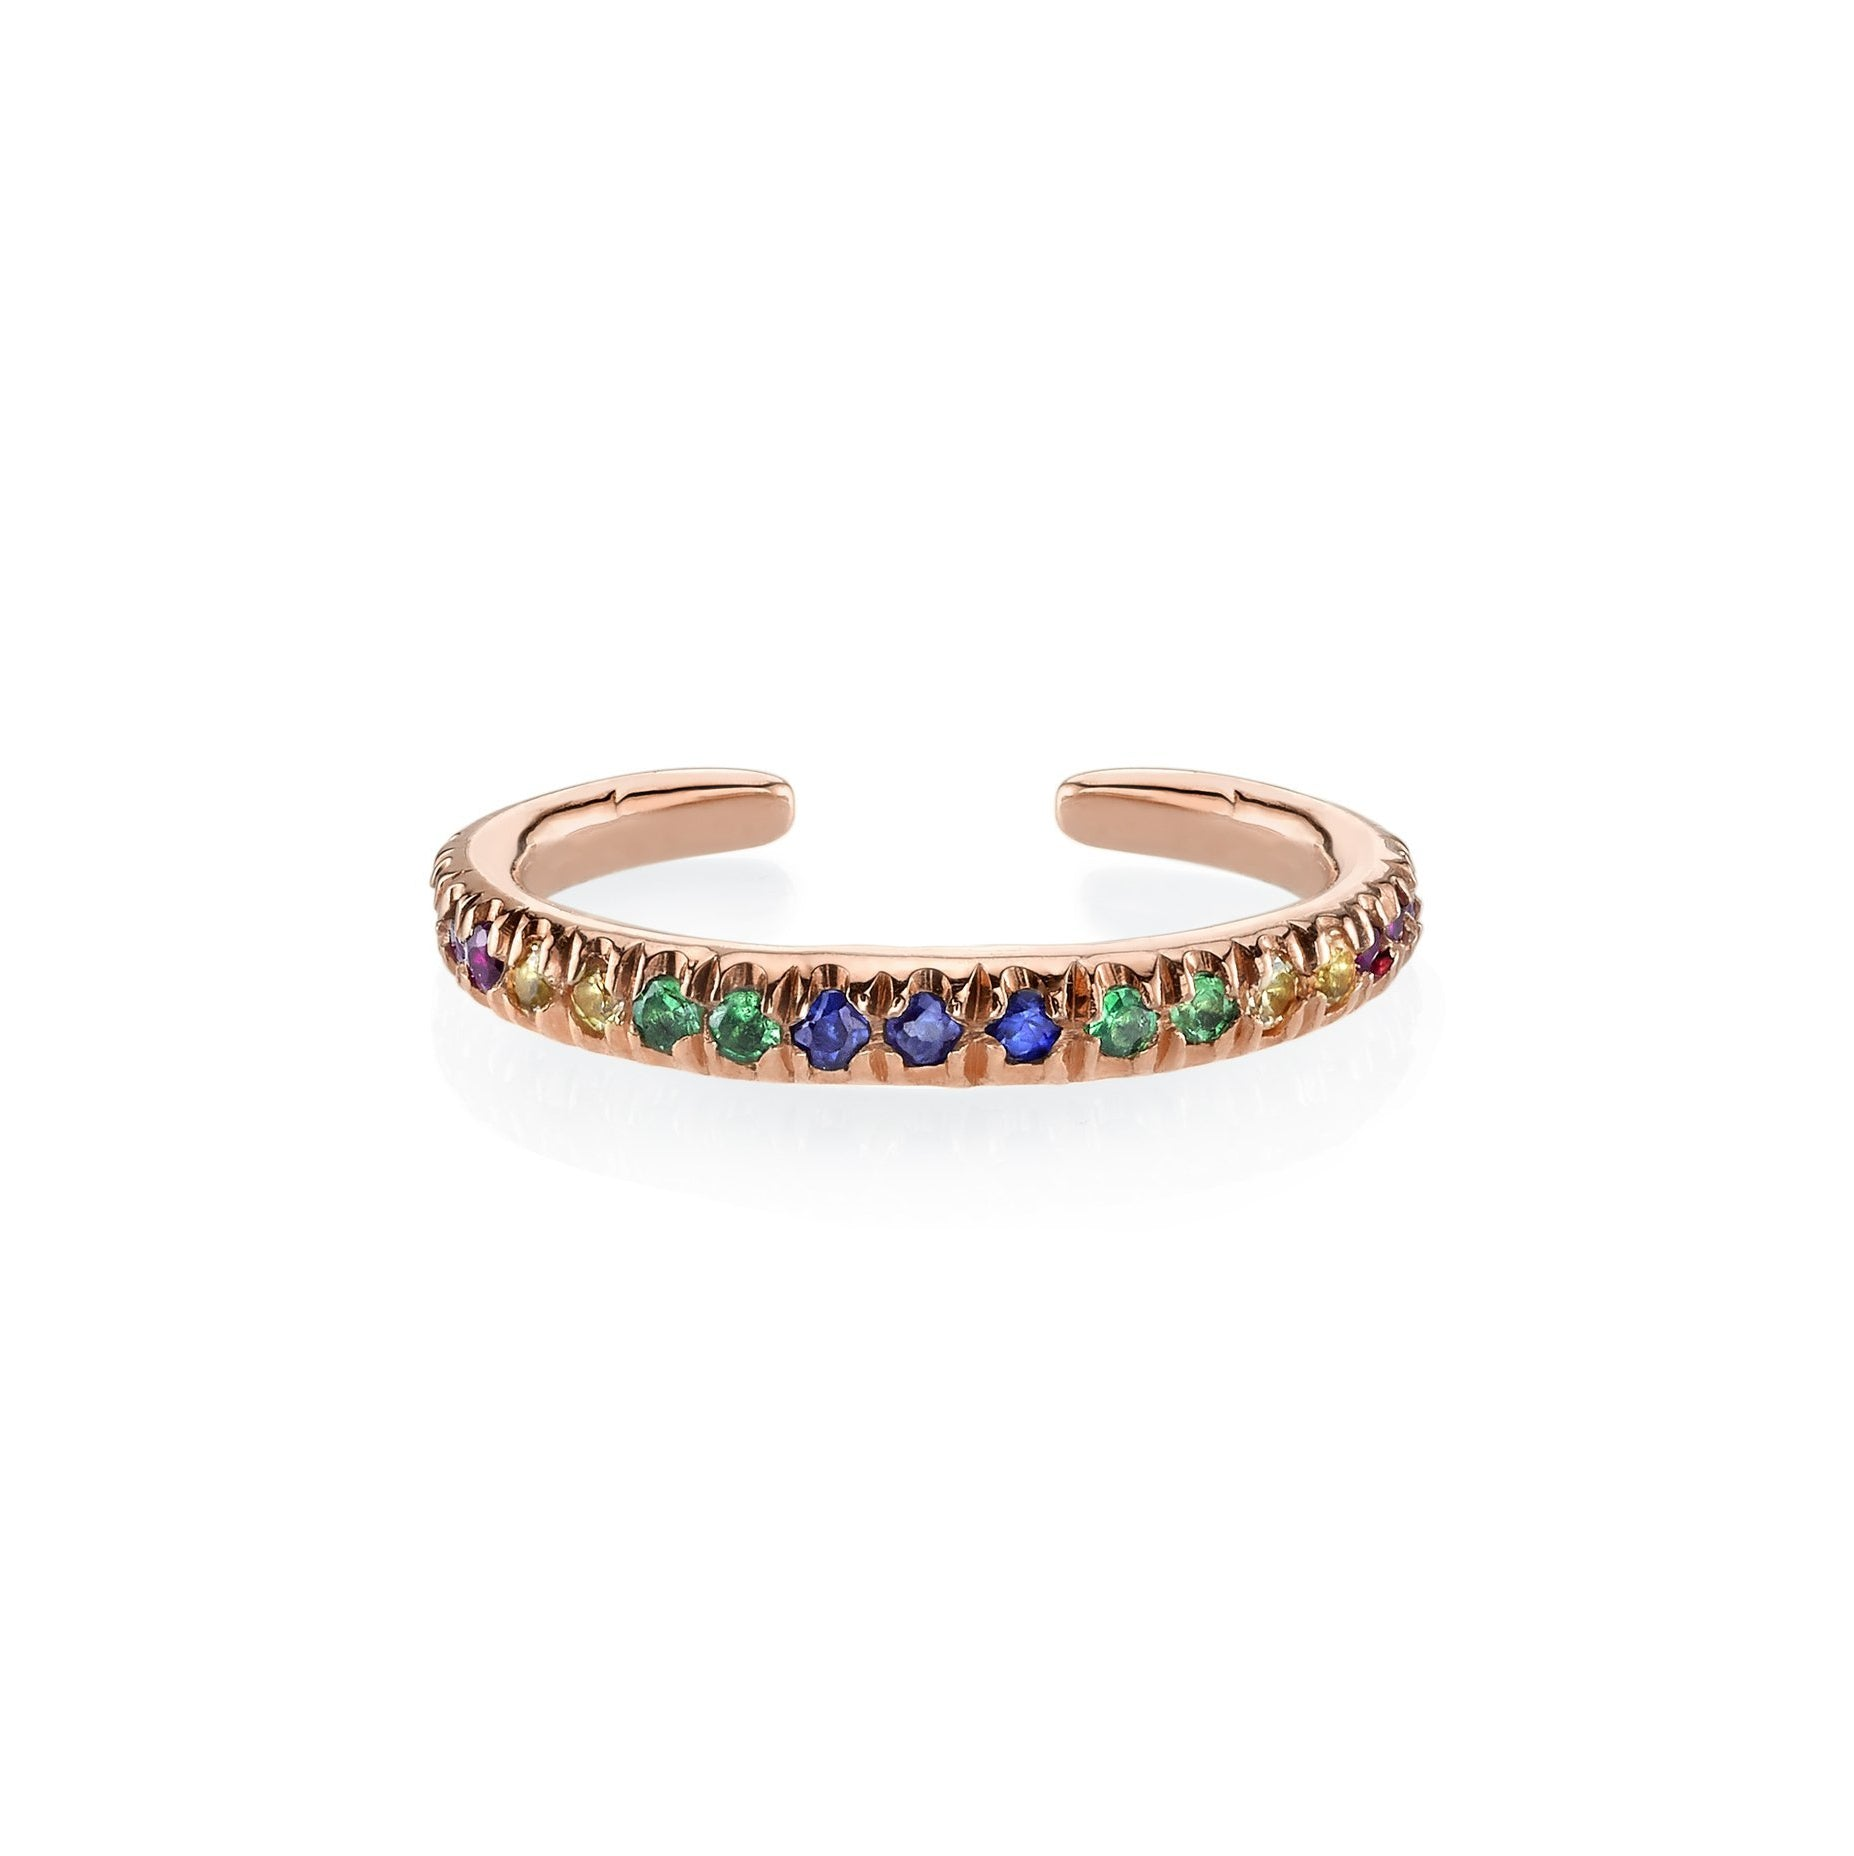 Reloaded Ear Cuff With Rainbow Pavé Stones - Gabriela Artigas